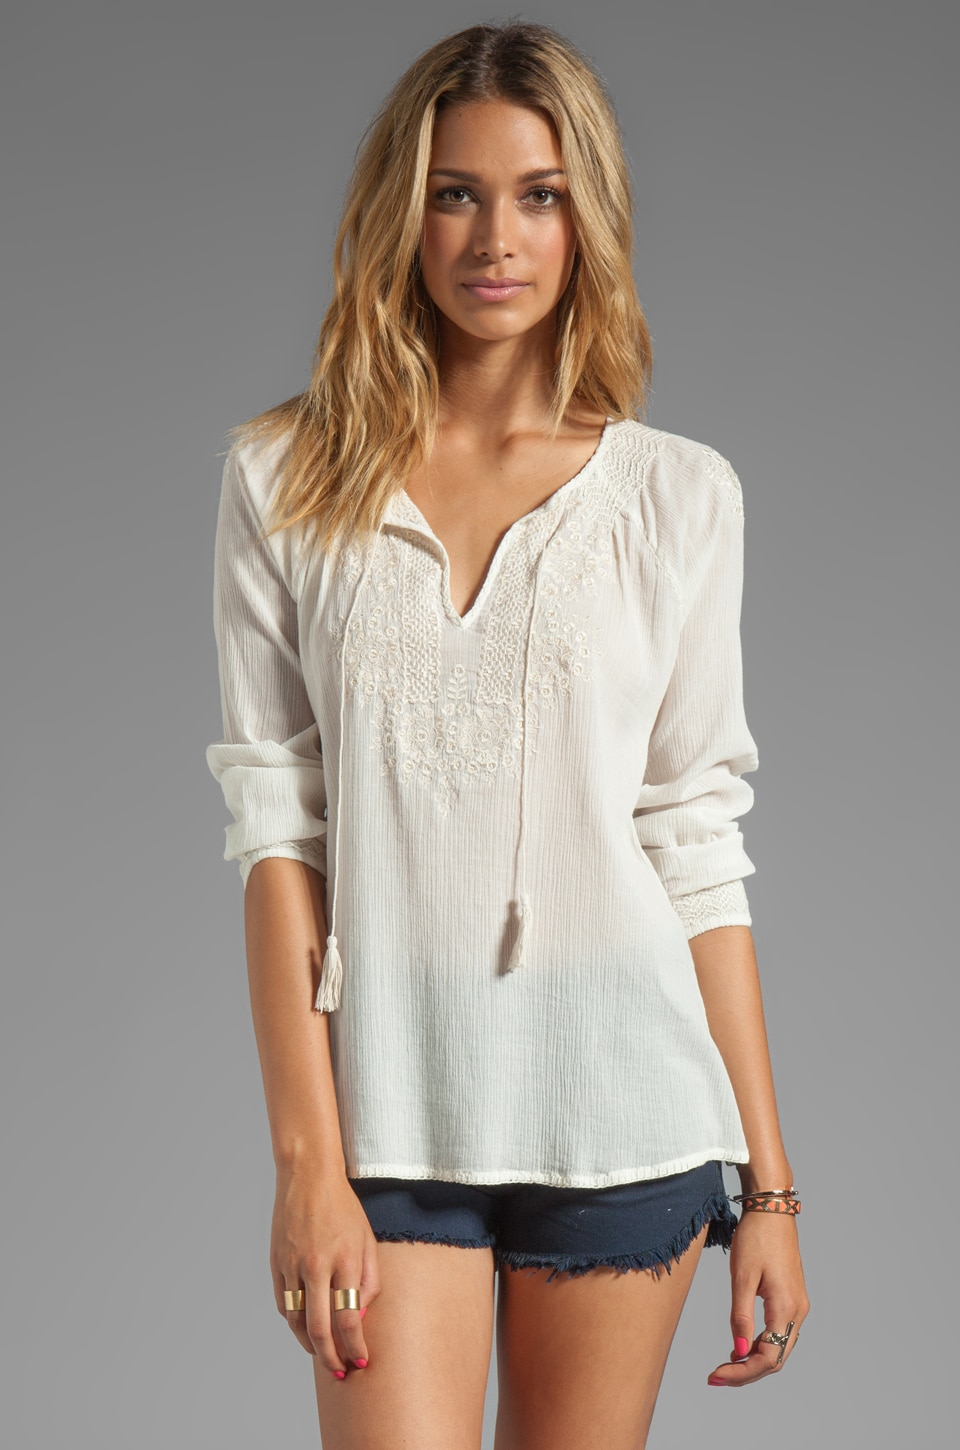 Joie Majorie Embroidery Top in Porcelain/New Moon